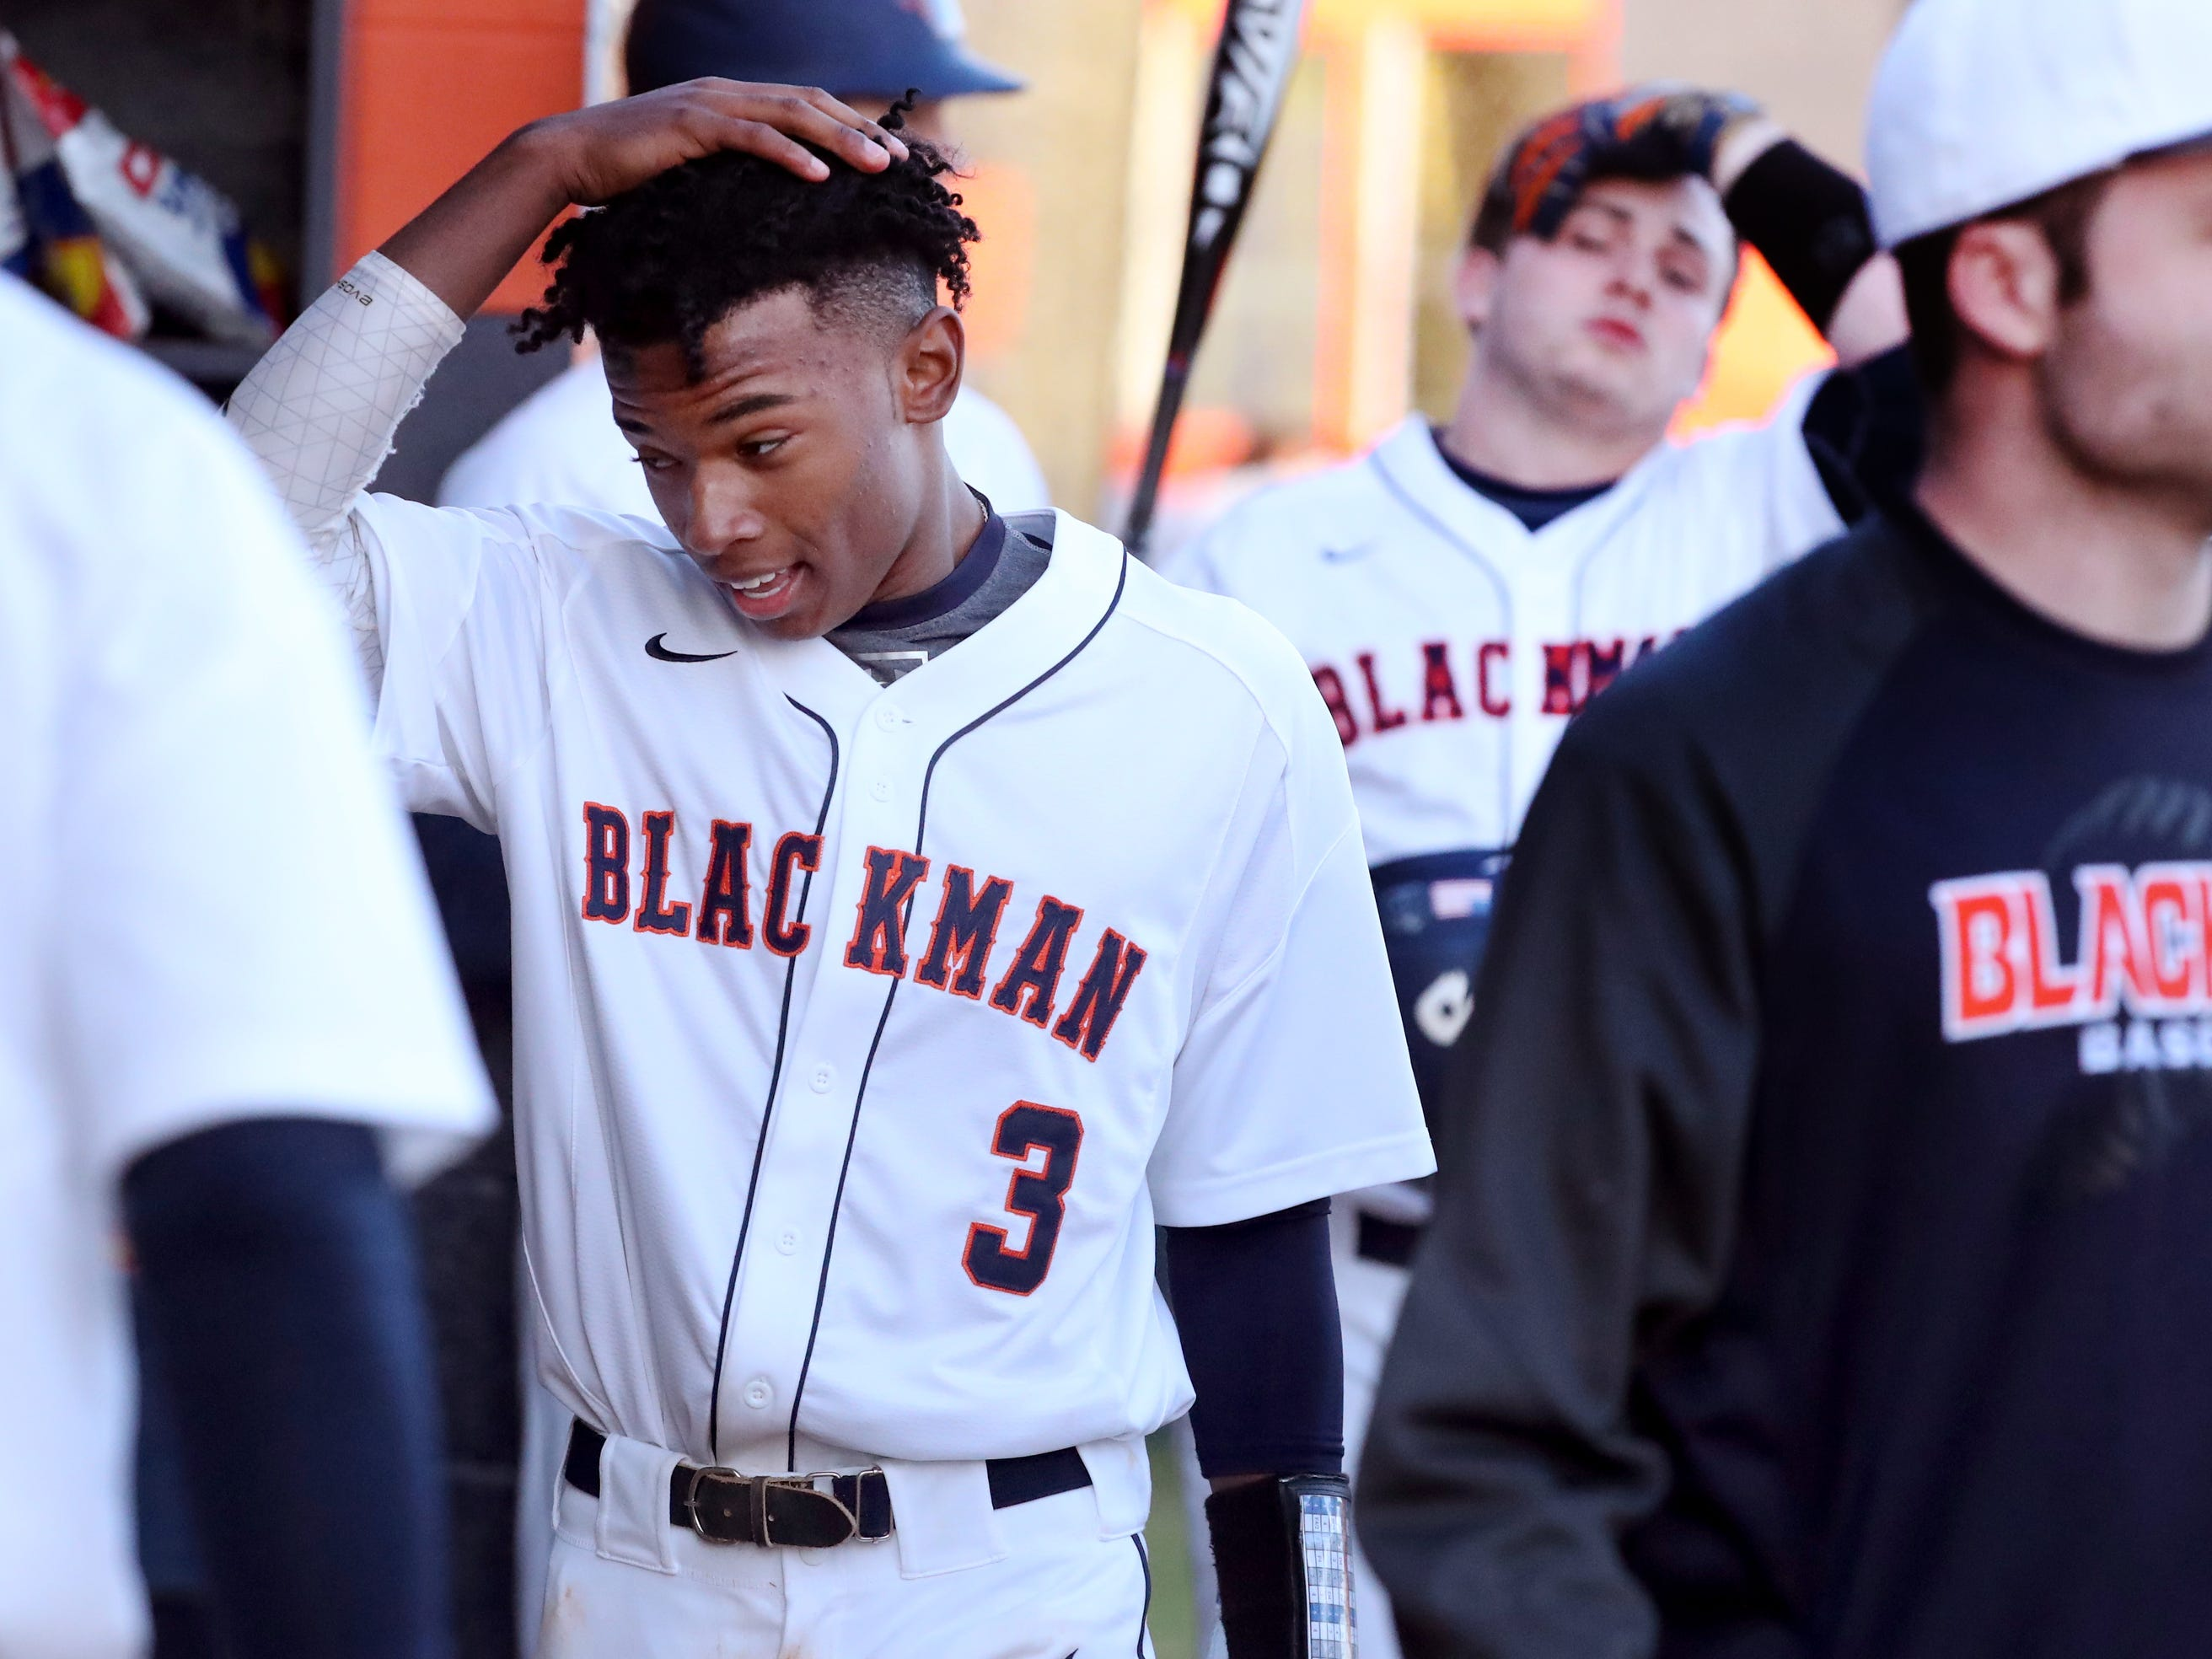 Blackman's Simaree Lewis (3) comes into the dugout after scoring a run against Siegel on Monday, March 11, 2019.